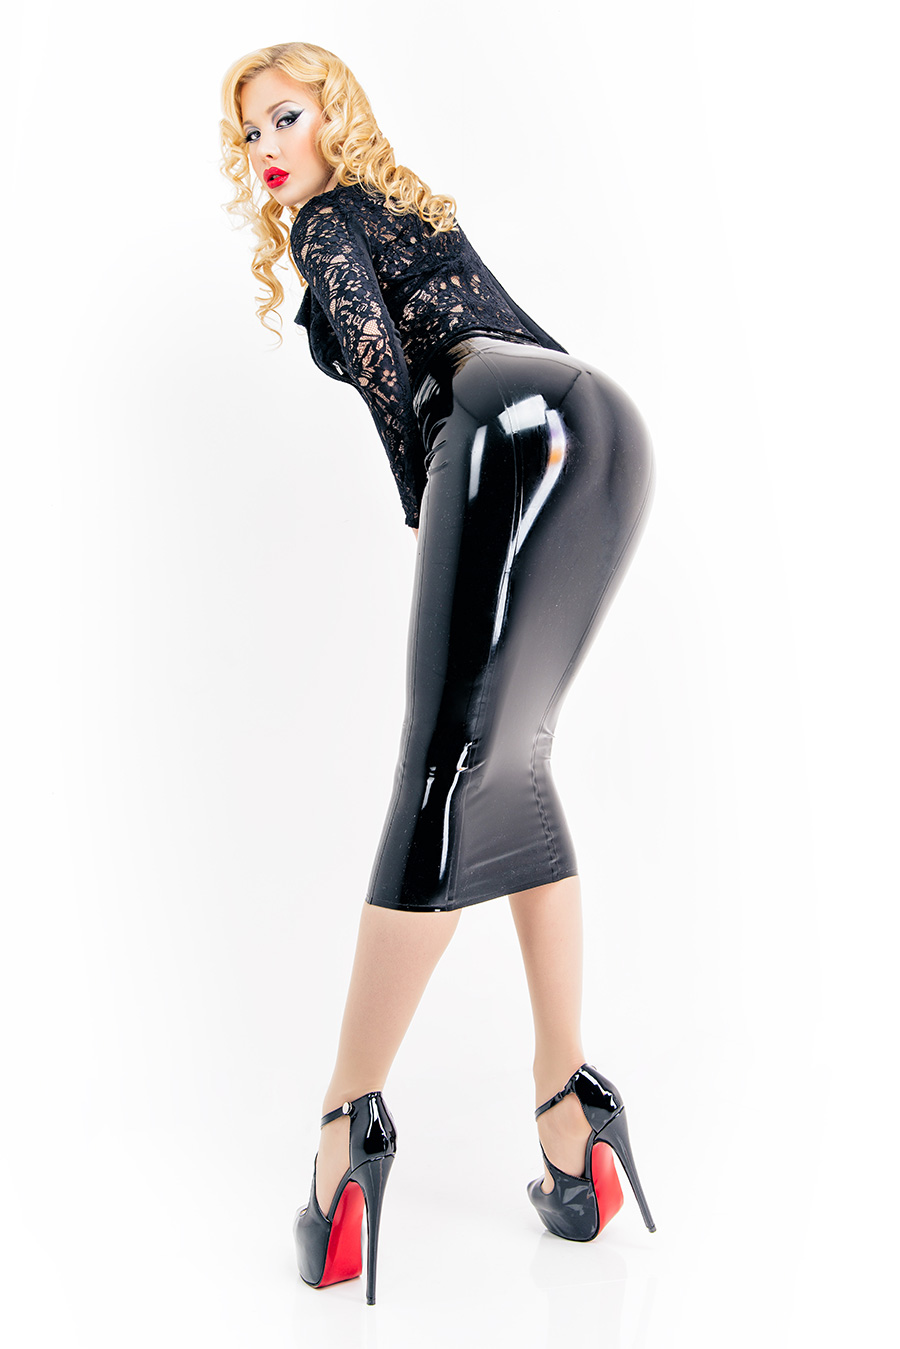 Langer hautenger Latex Rock in Schwarz mit High Heels